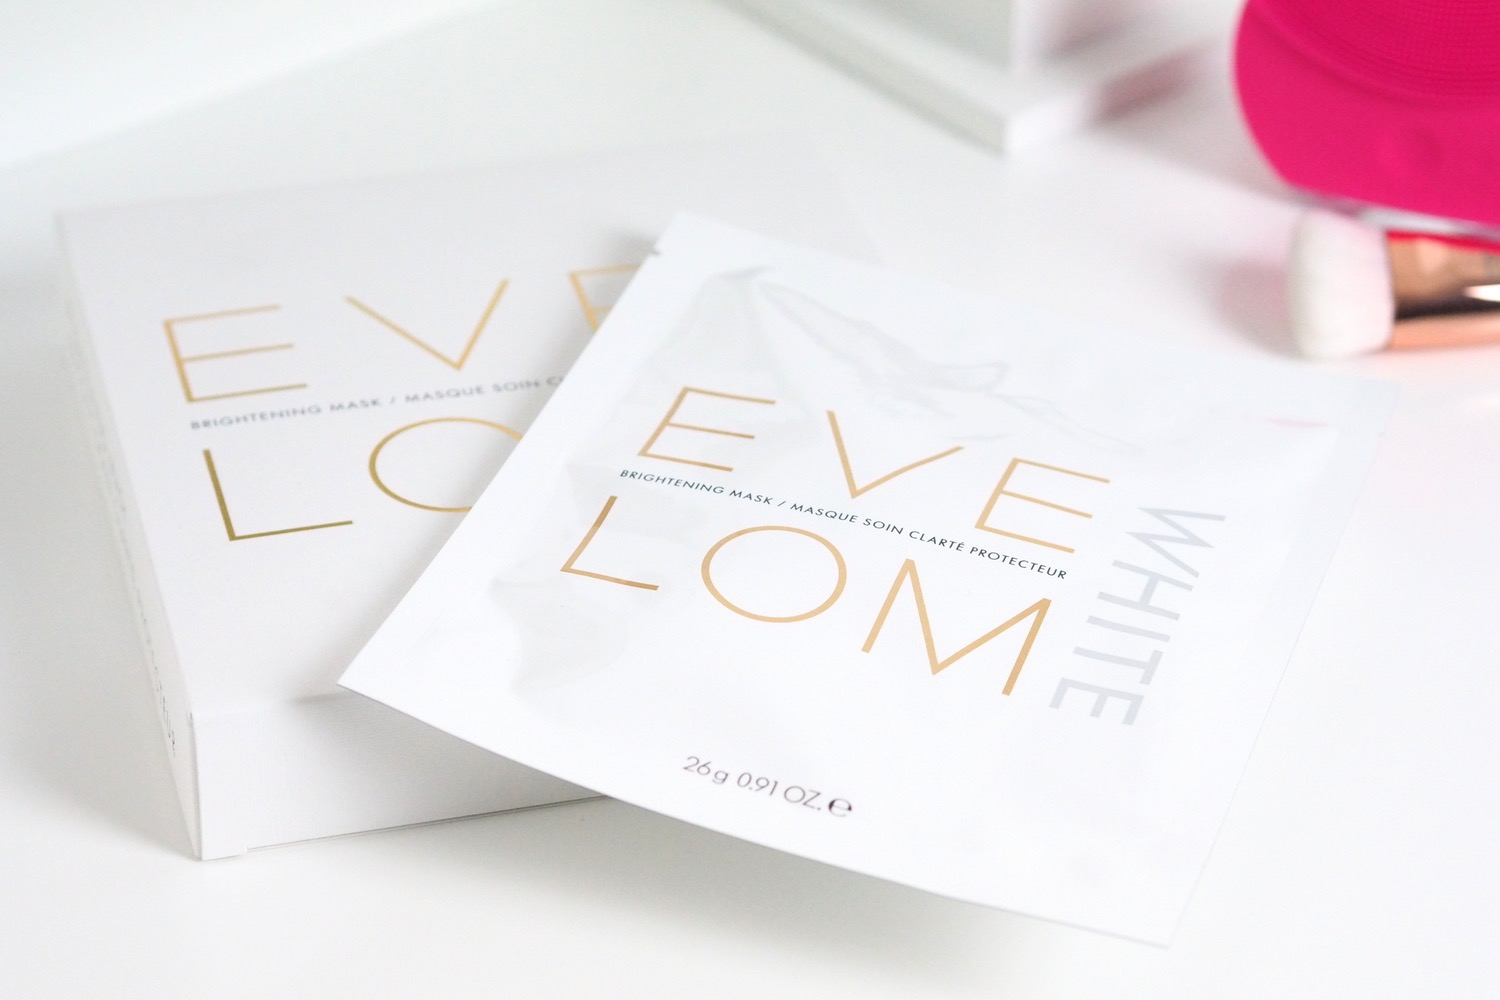 eve lom white brightening masks